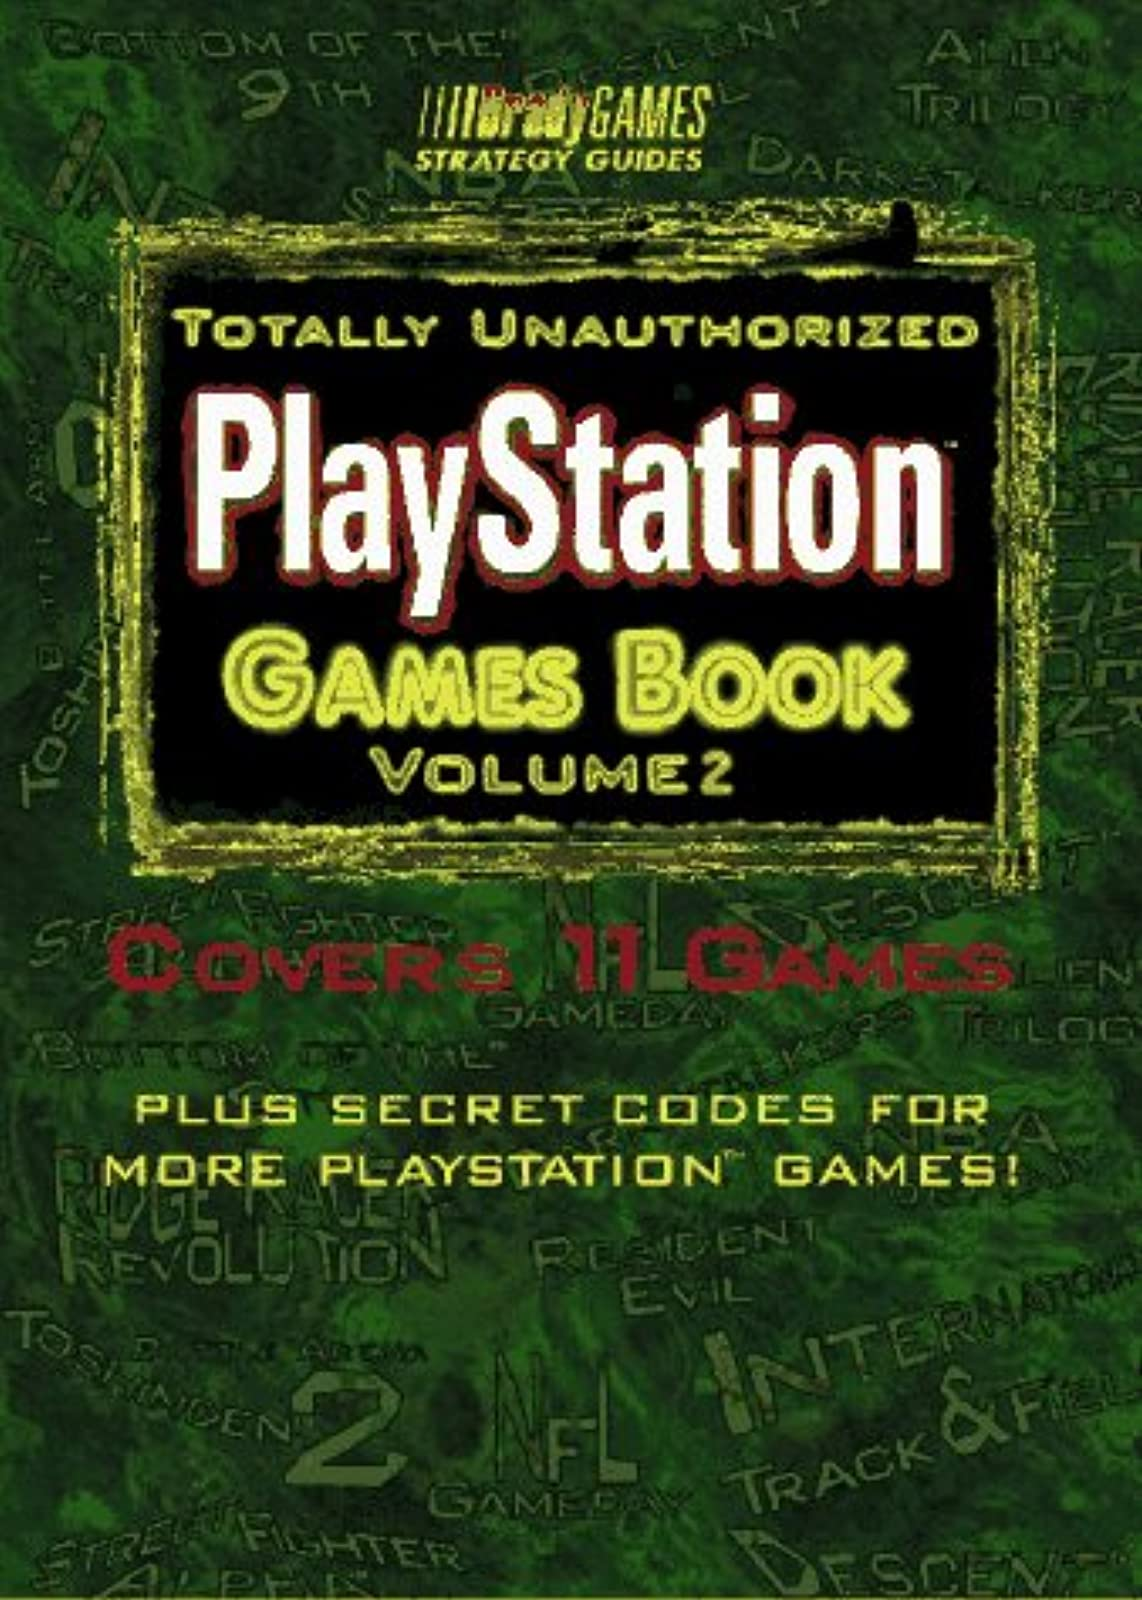 PlayStation Games Guide Volume 2 Bradygames Vol 2 Strategy Guide